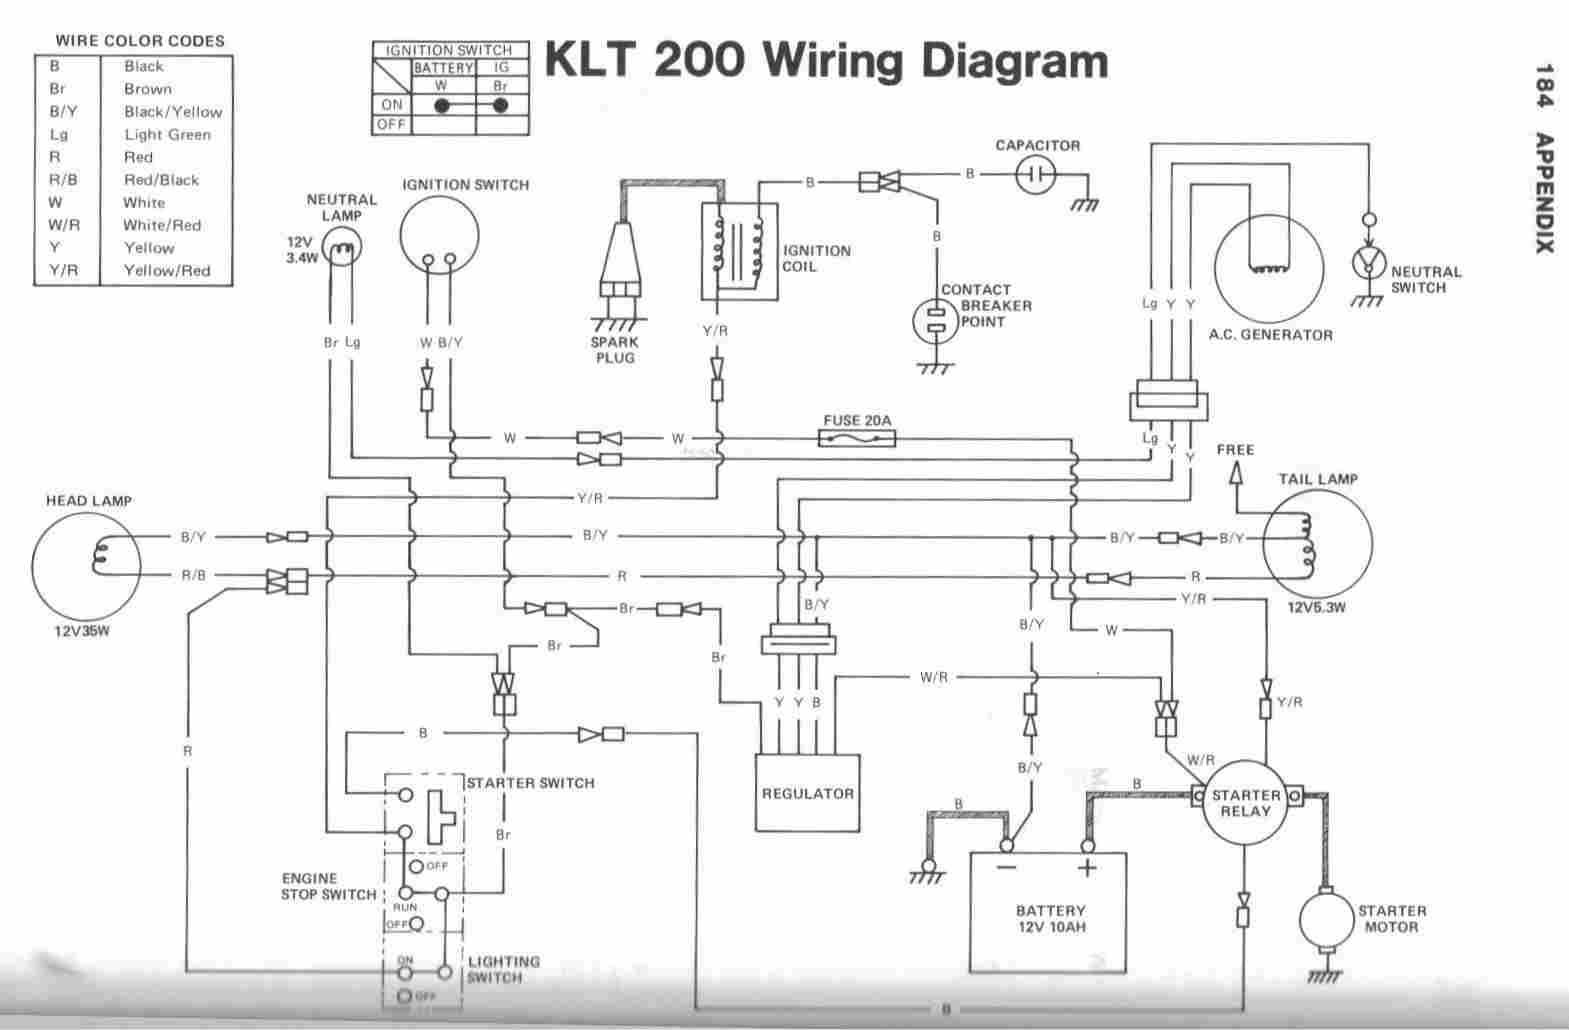 medium resolution of wiring diagrams pdf wiring diagram for you industrial wiring diagrams pdf